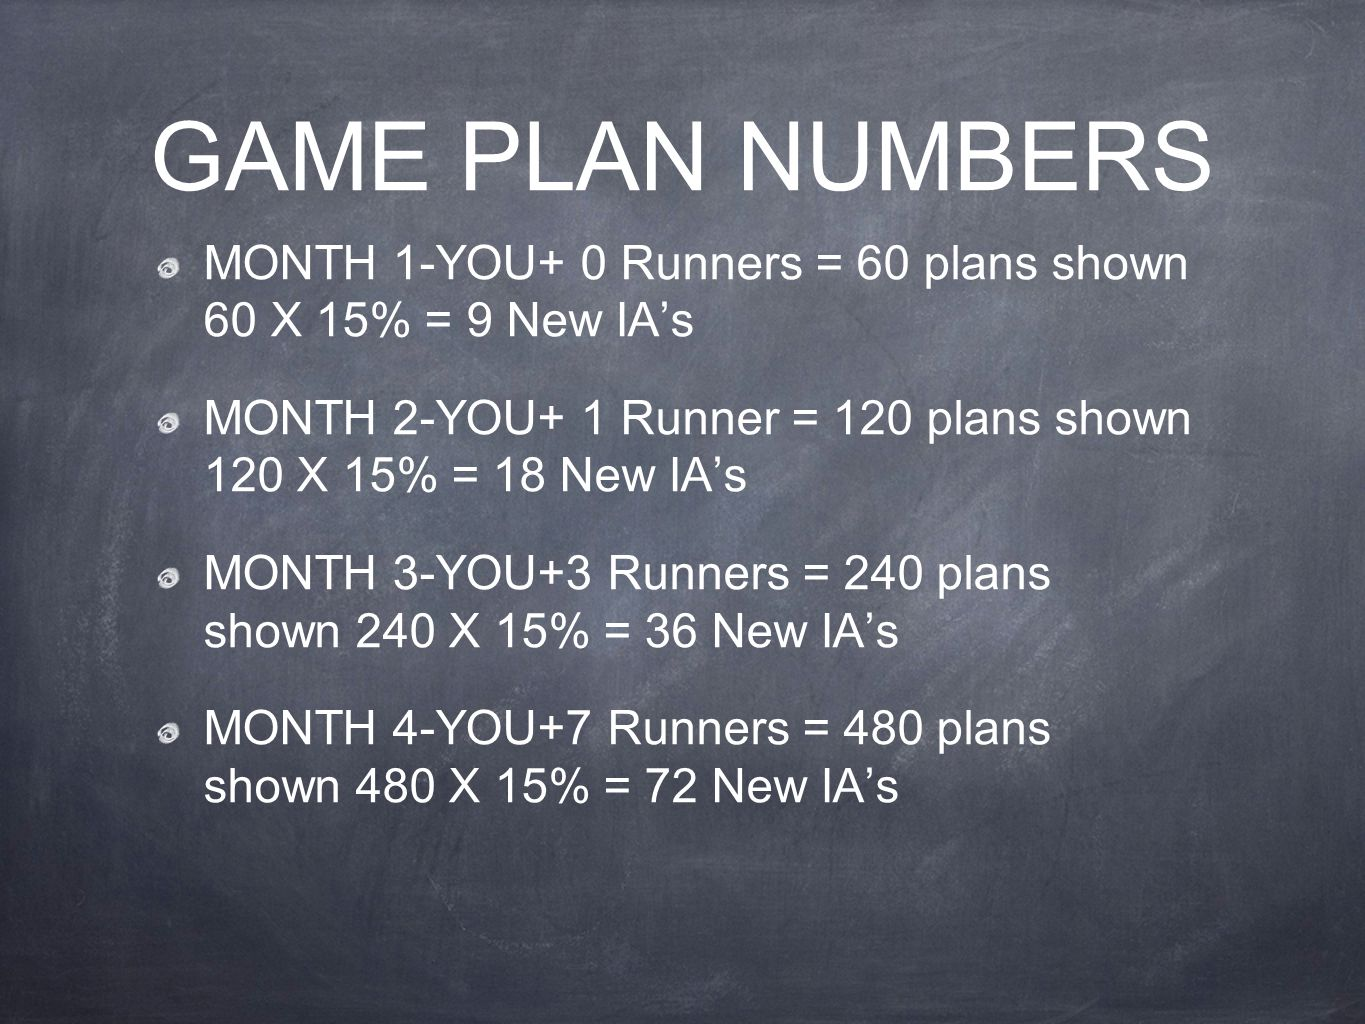 GAME PLAN NUMBERS MONTH 1-YOU+ 0 Runners = 60 plans shown 60 X 15% = 9 New IA's. MONTH 2-YOU+ 1 Runner = 120 plans shown 120 X 15% = 18 New IA's.